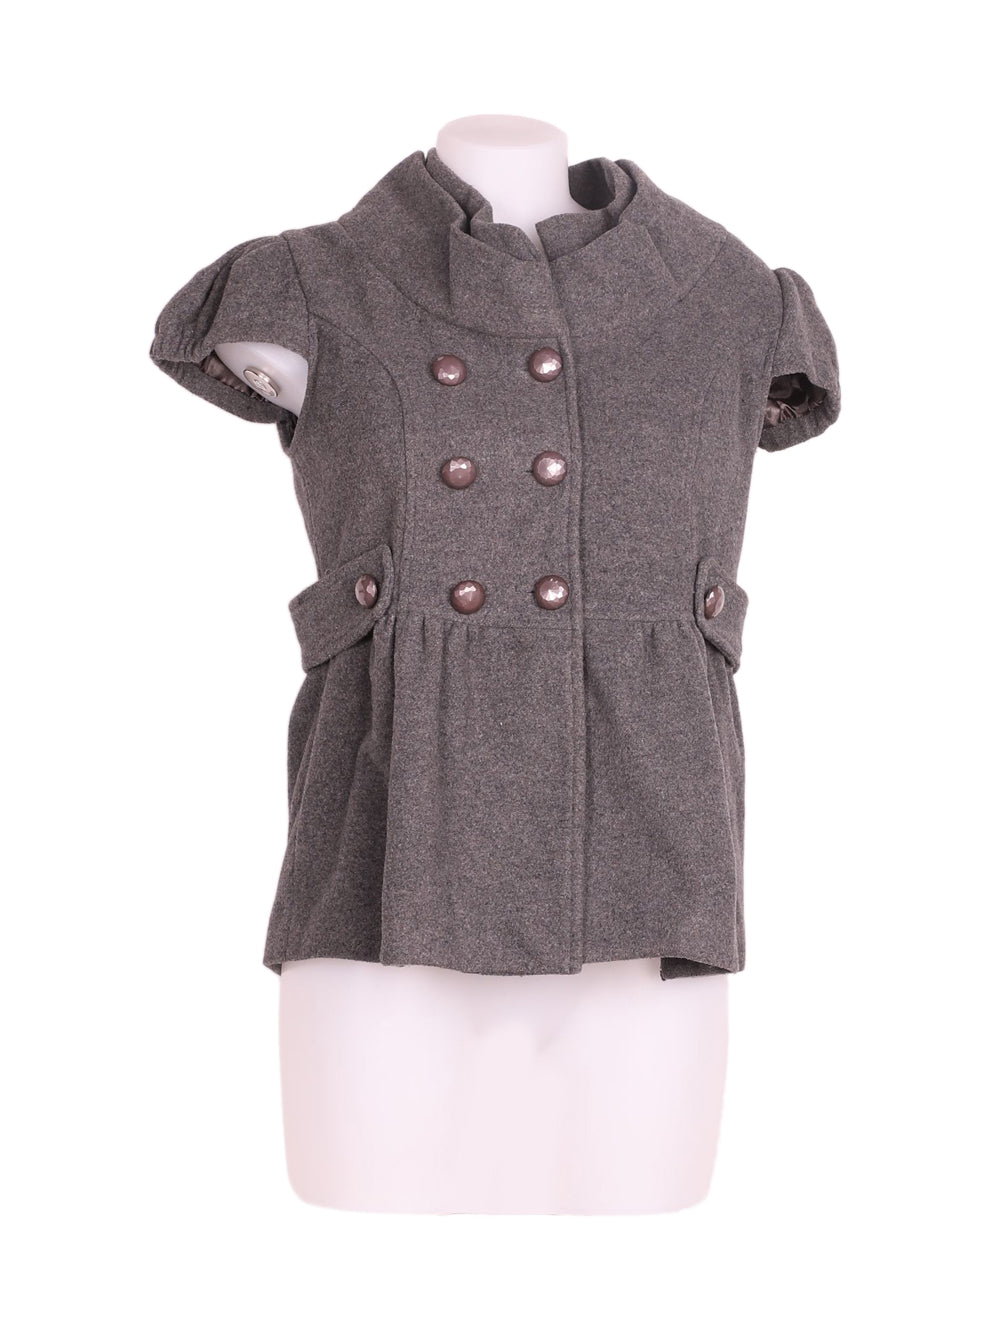 Front photo of Preloved TSega Grey Woman's sleeveless jacket - size 10/M